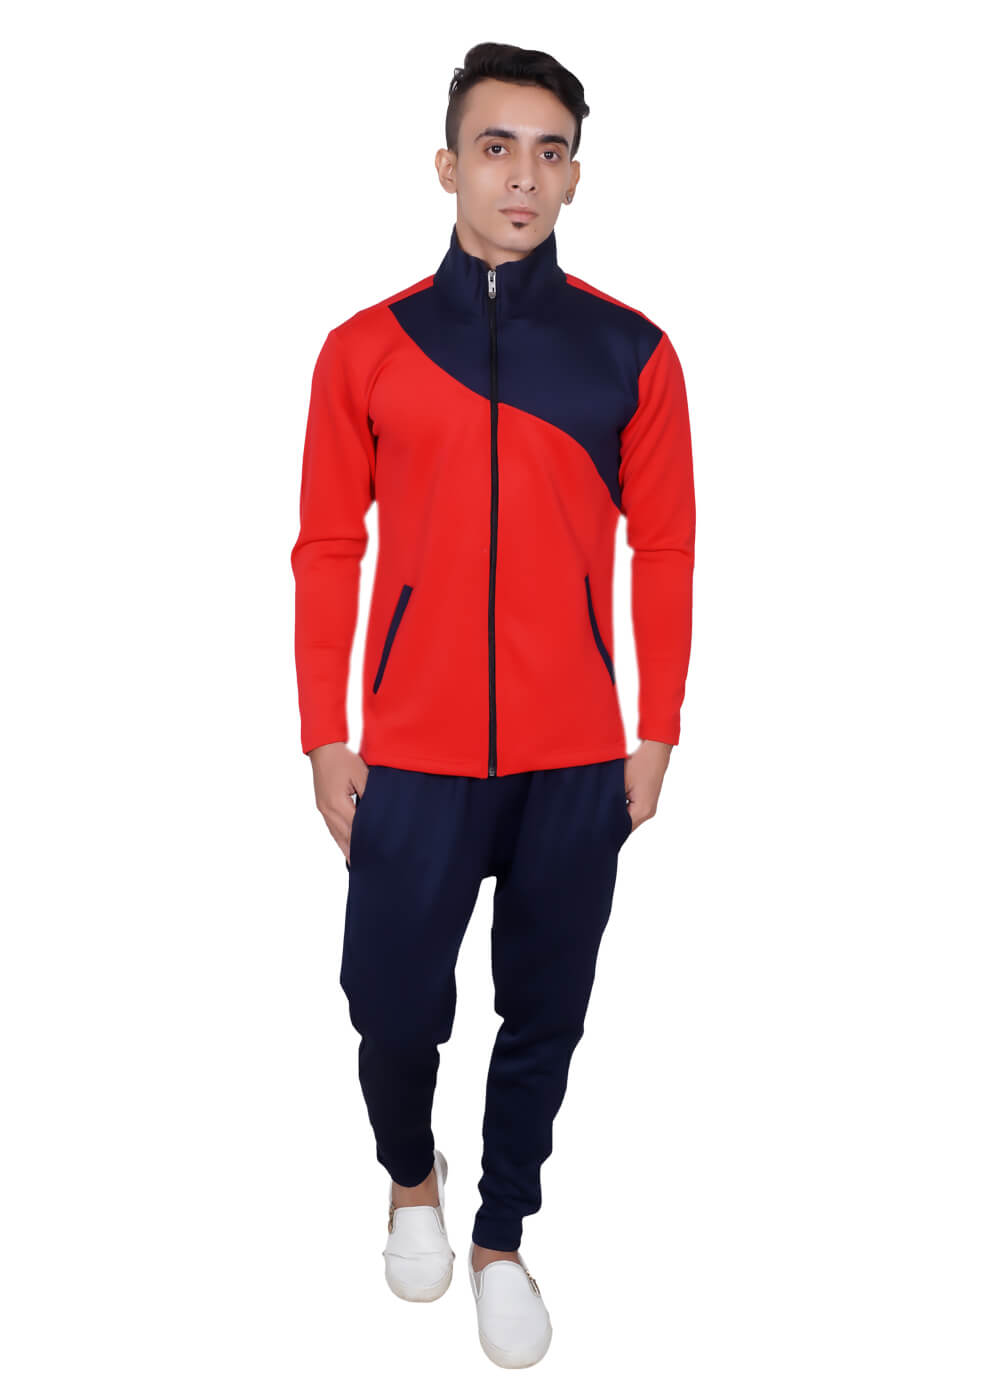 Cheap Tracksuits Manufacturers in Navi-mumbai